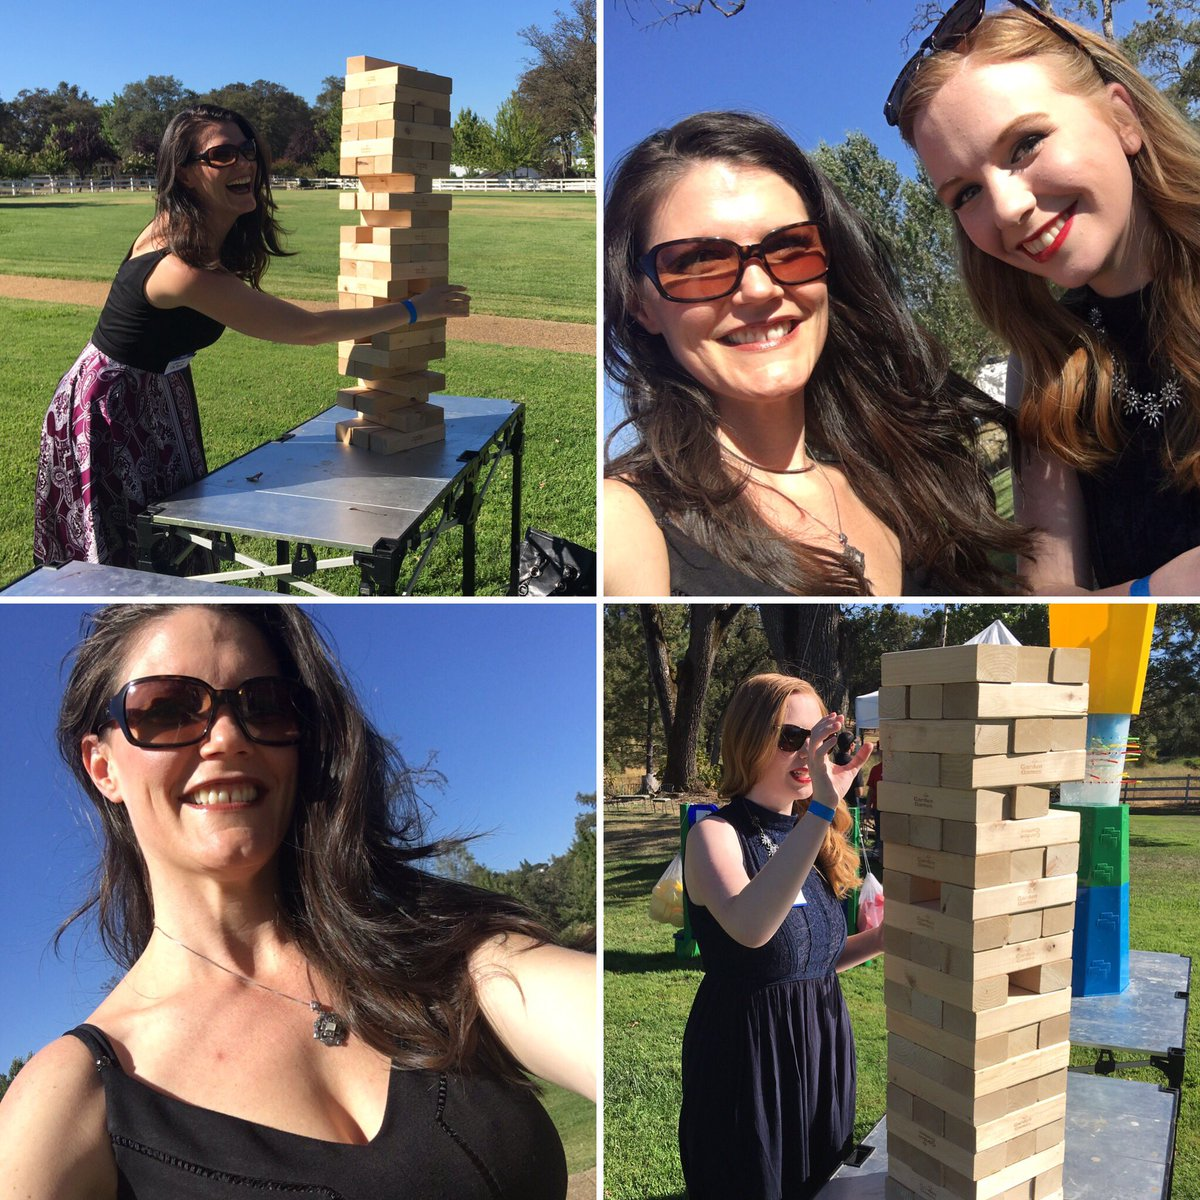 Janine Derose  >> Janine Derose On Twitter We Had So Much Fun Playing Games Out On